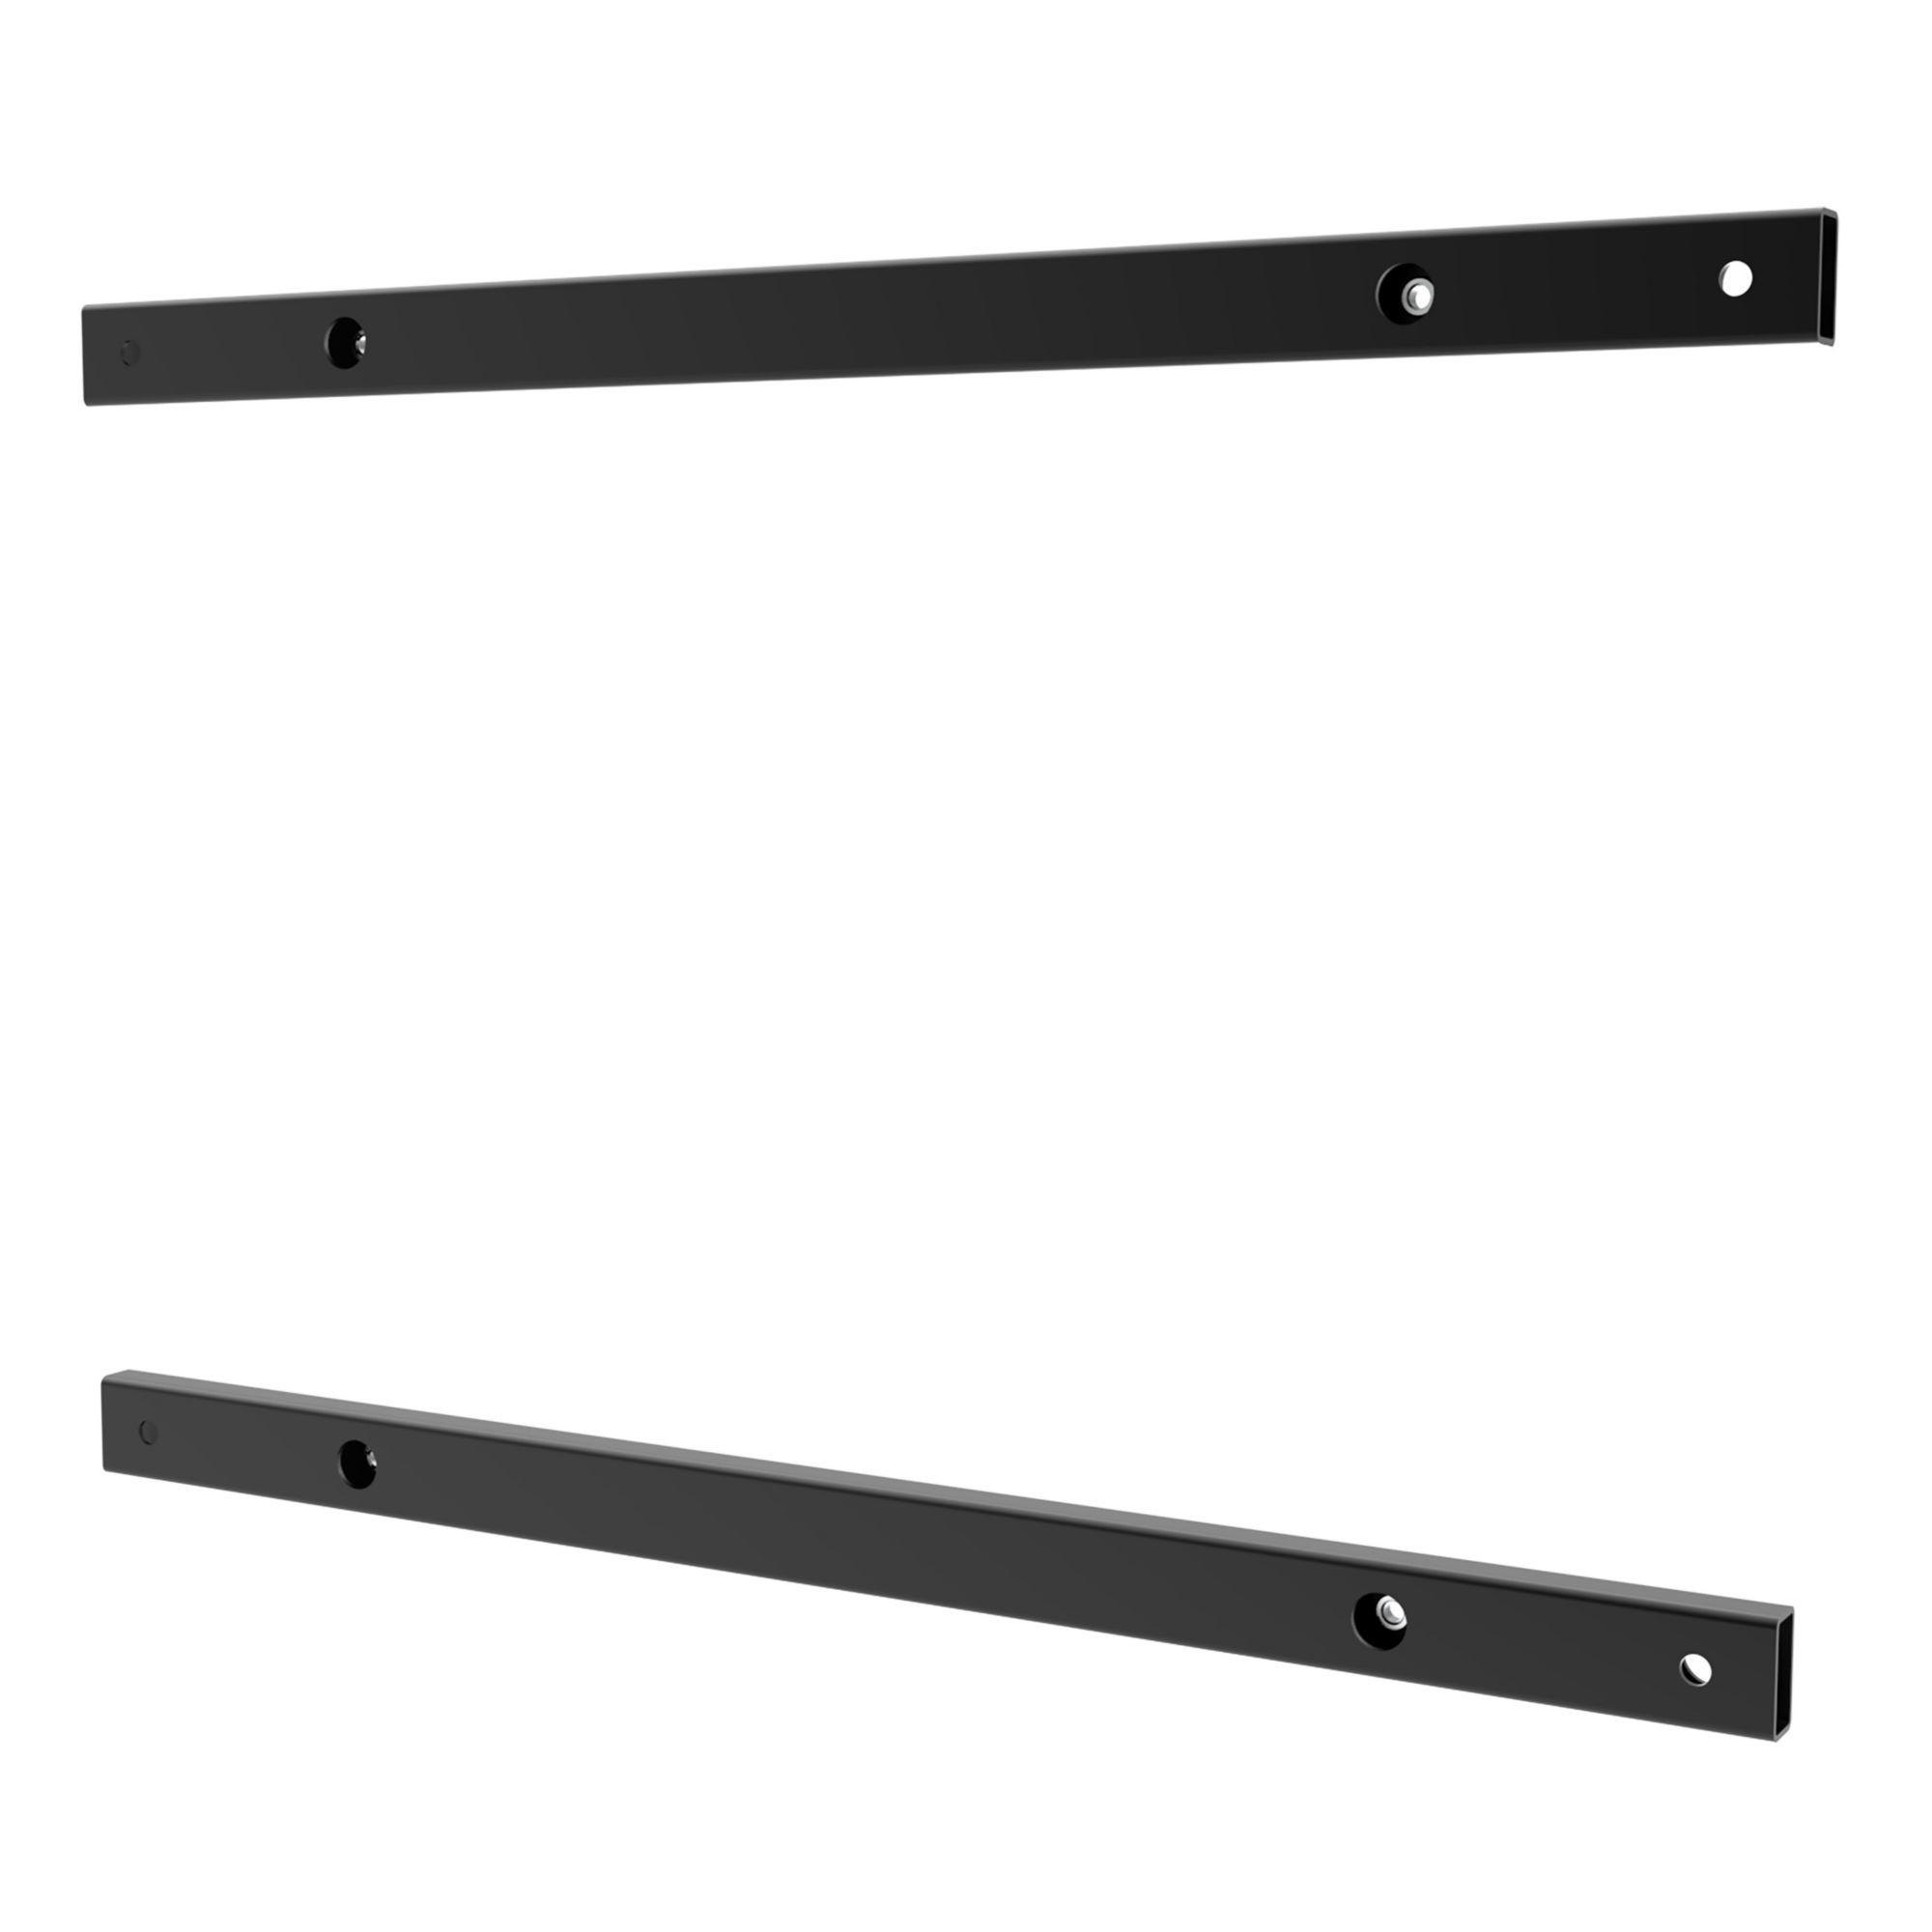 Accessory Adaptor Rail For VESA 600 x 400mm Mounting Pattern